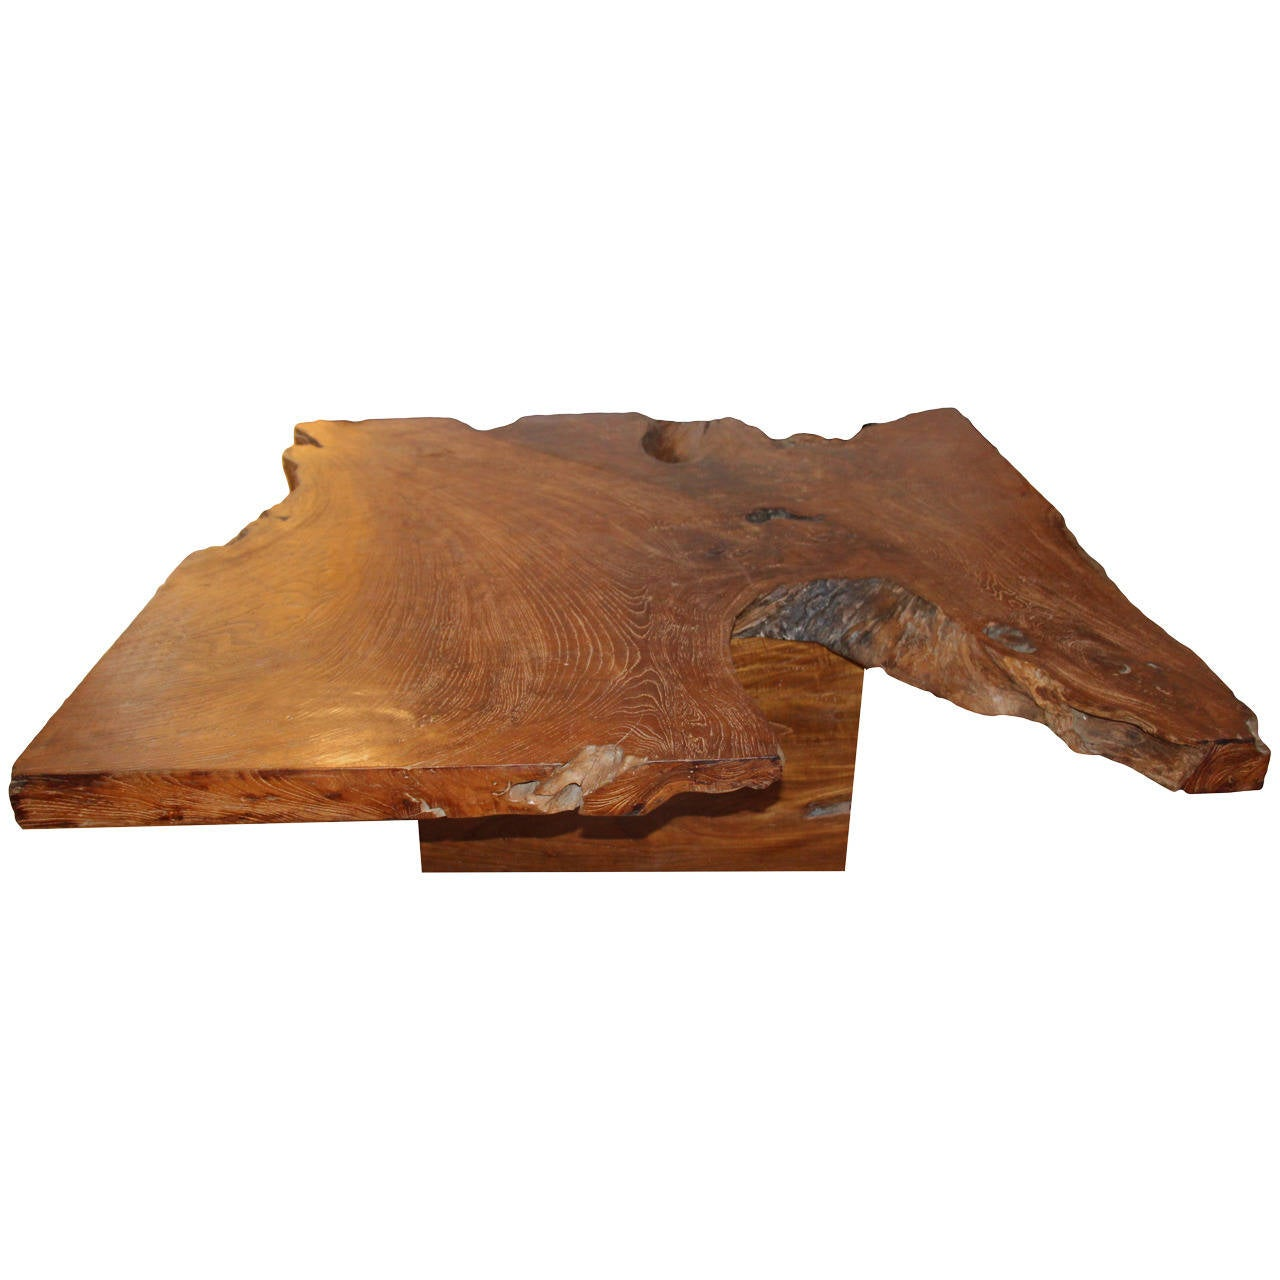 Andrianna Shamaris Single Slab Top Organic Teak Wood Coffee Table For Sale At 1stdibs